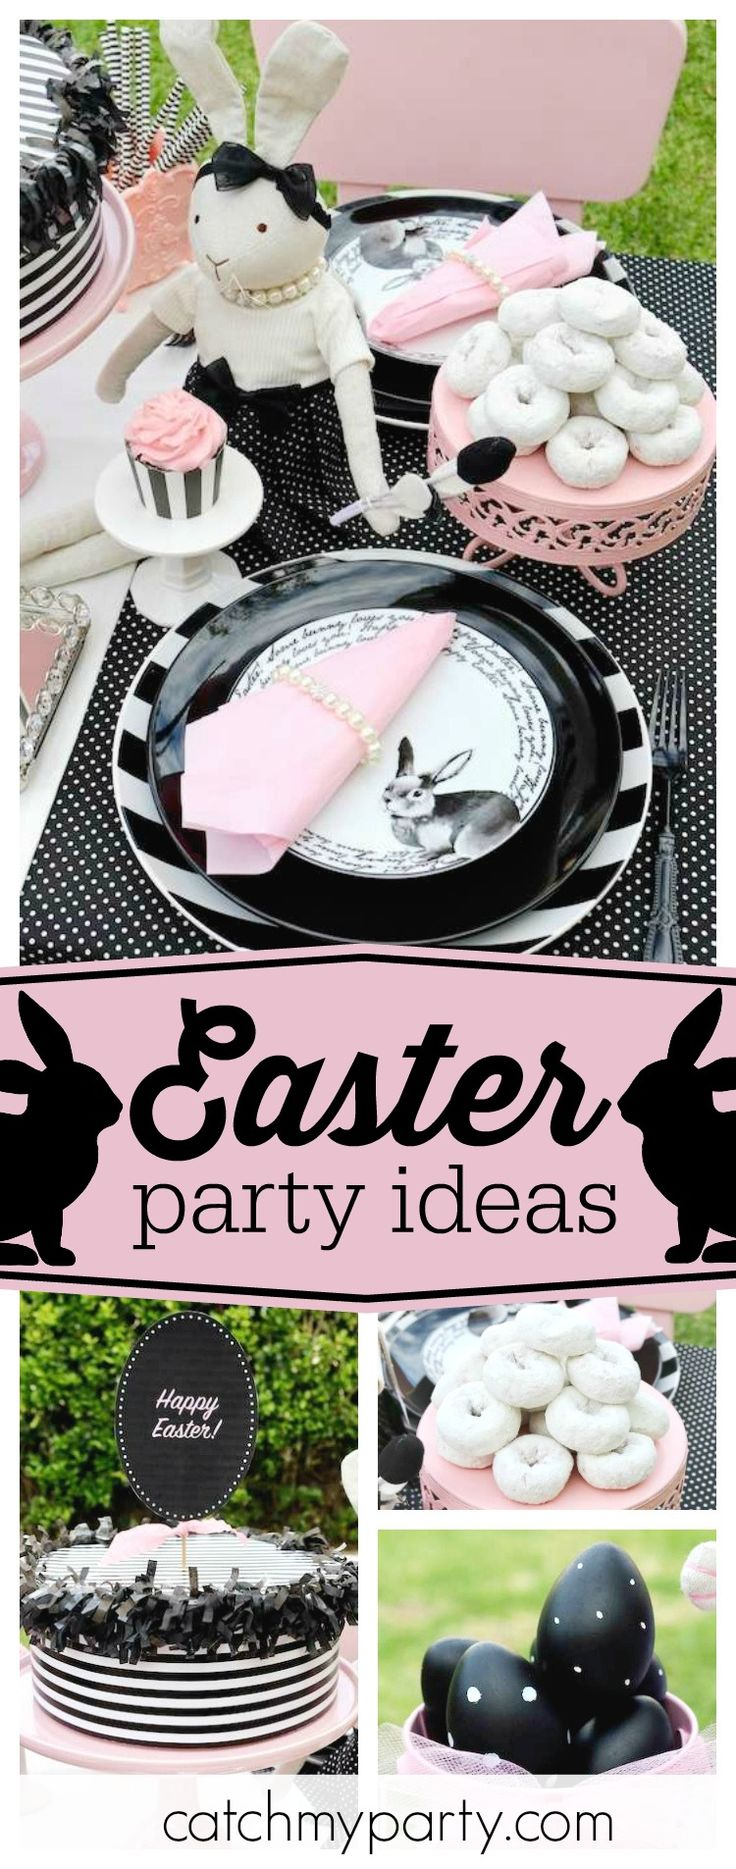 Don't miss this glam Easter party! the table settings are so cute!! See more party ideas and share yours at CatchMyParty.com